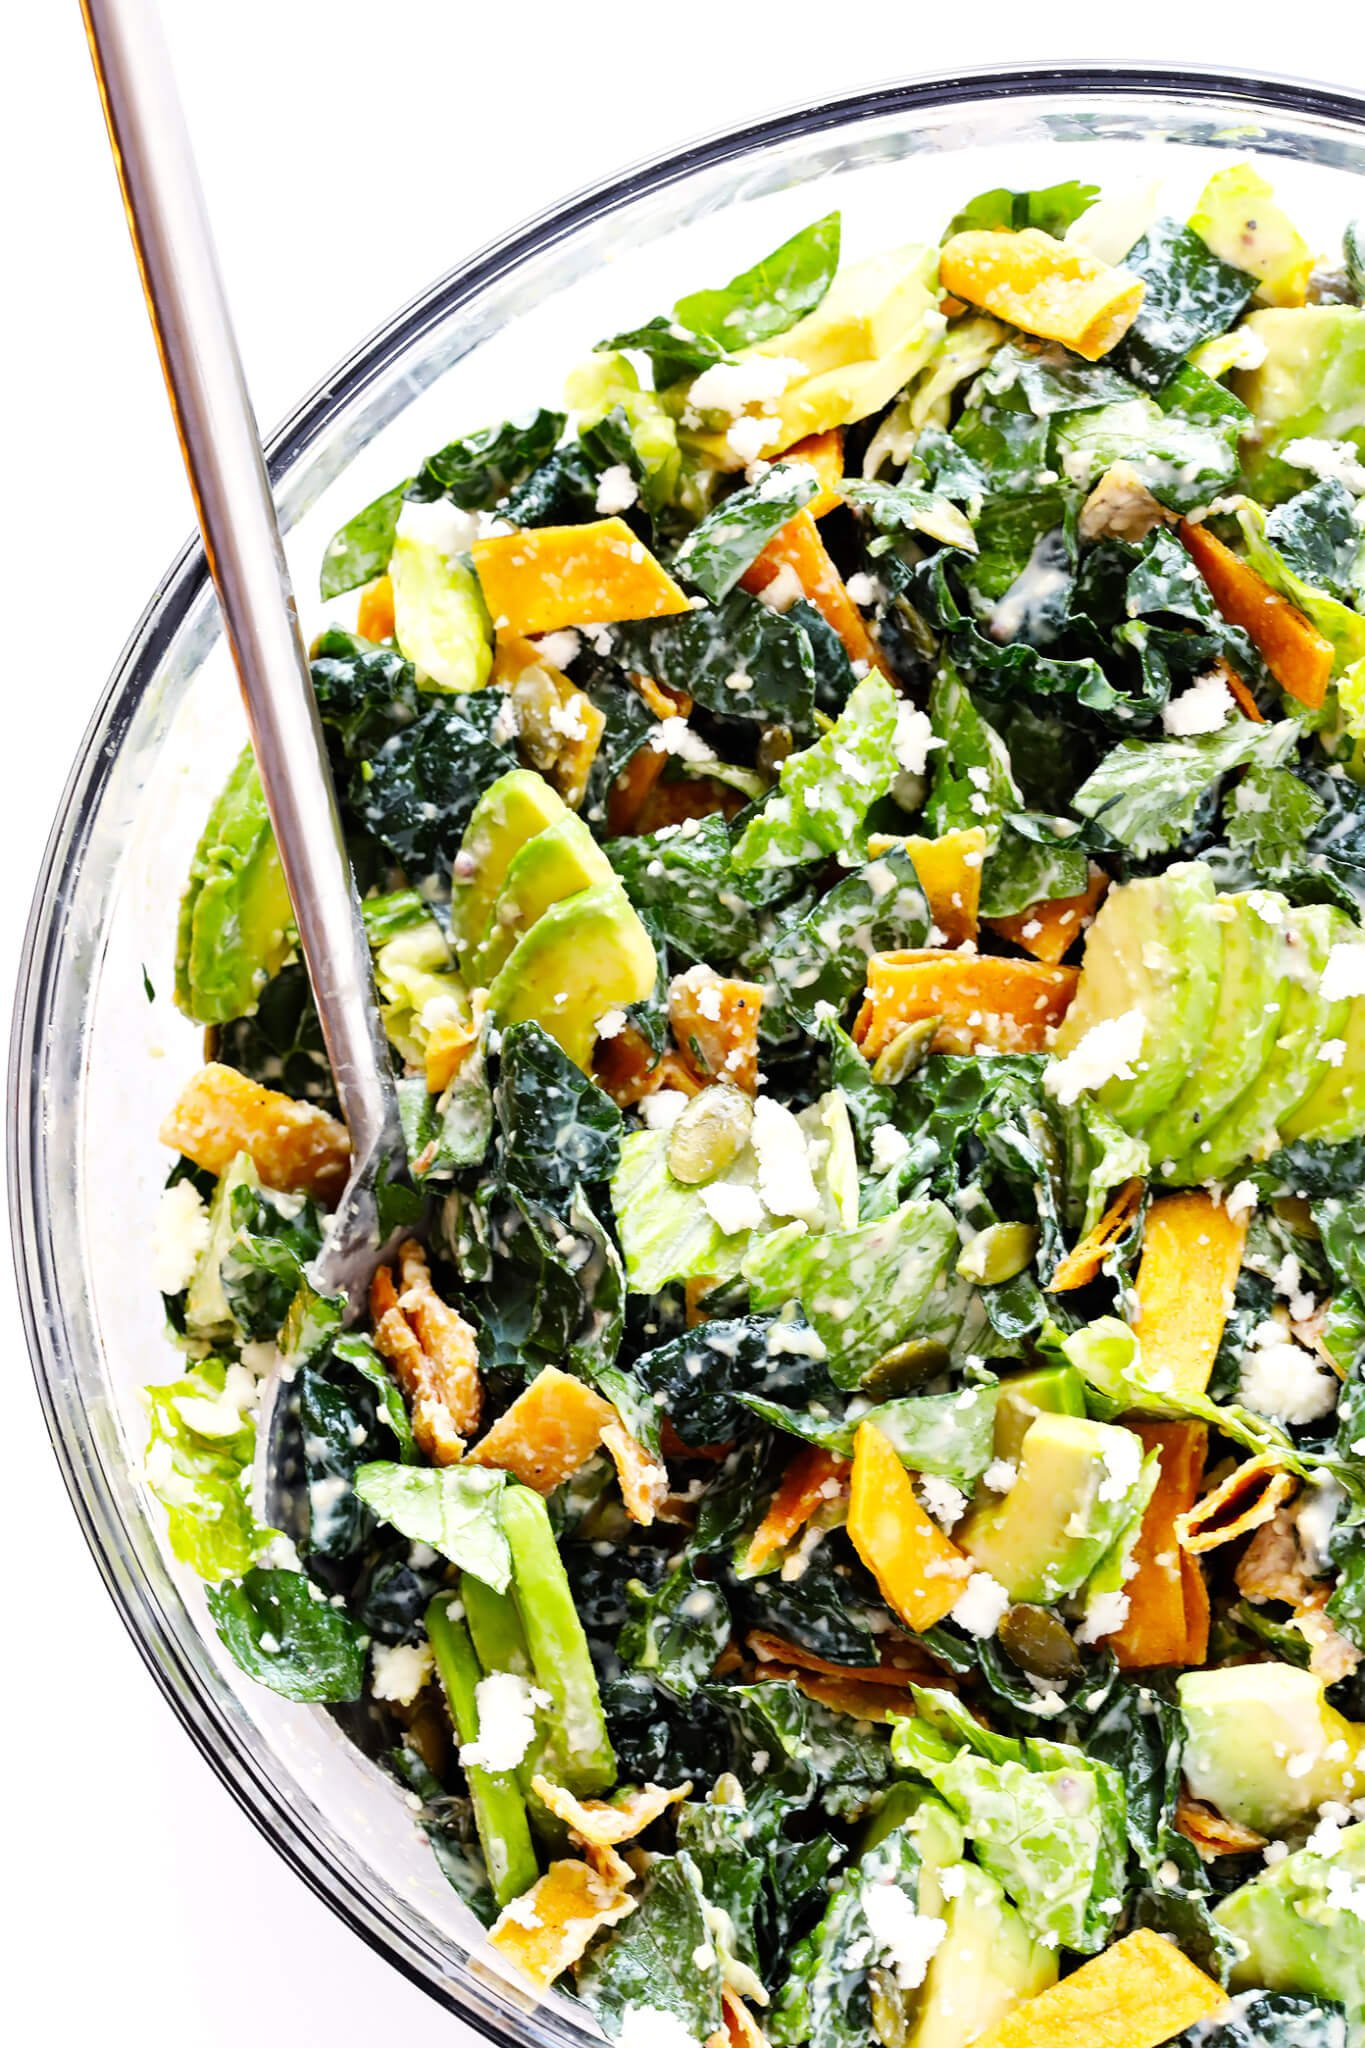 This Mexican Caesar Salad recipe is SO DELICIOUS, and made with kale, Romaine, avocado, crispy tortilla strips, pepitas, crumbled cotija cheese, and a creamy Greek Yogurt Caesar Dressing. | gimmesomeoven.com